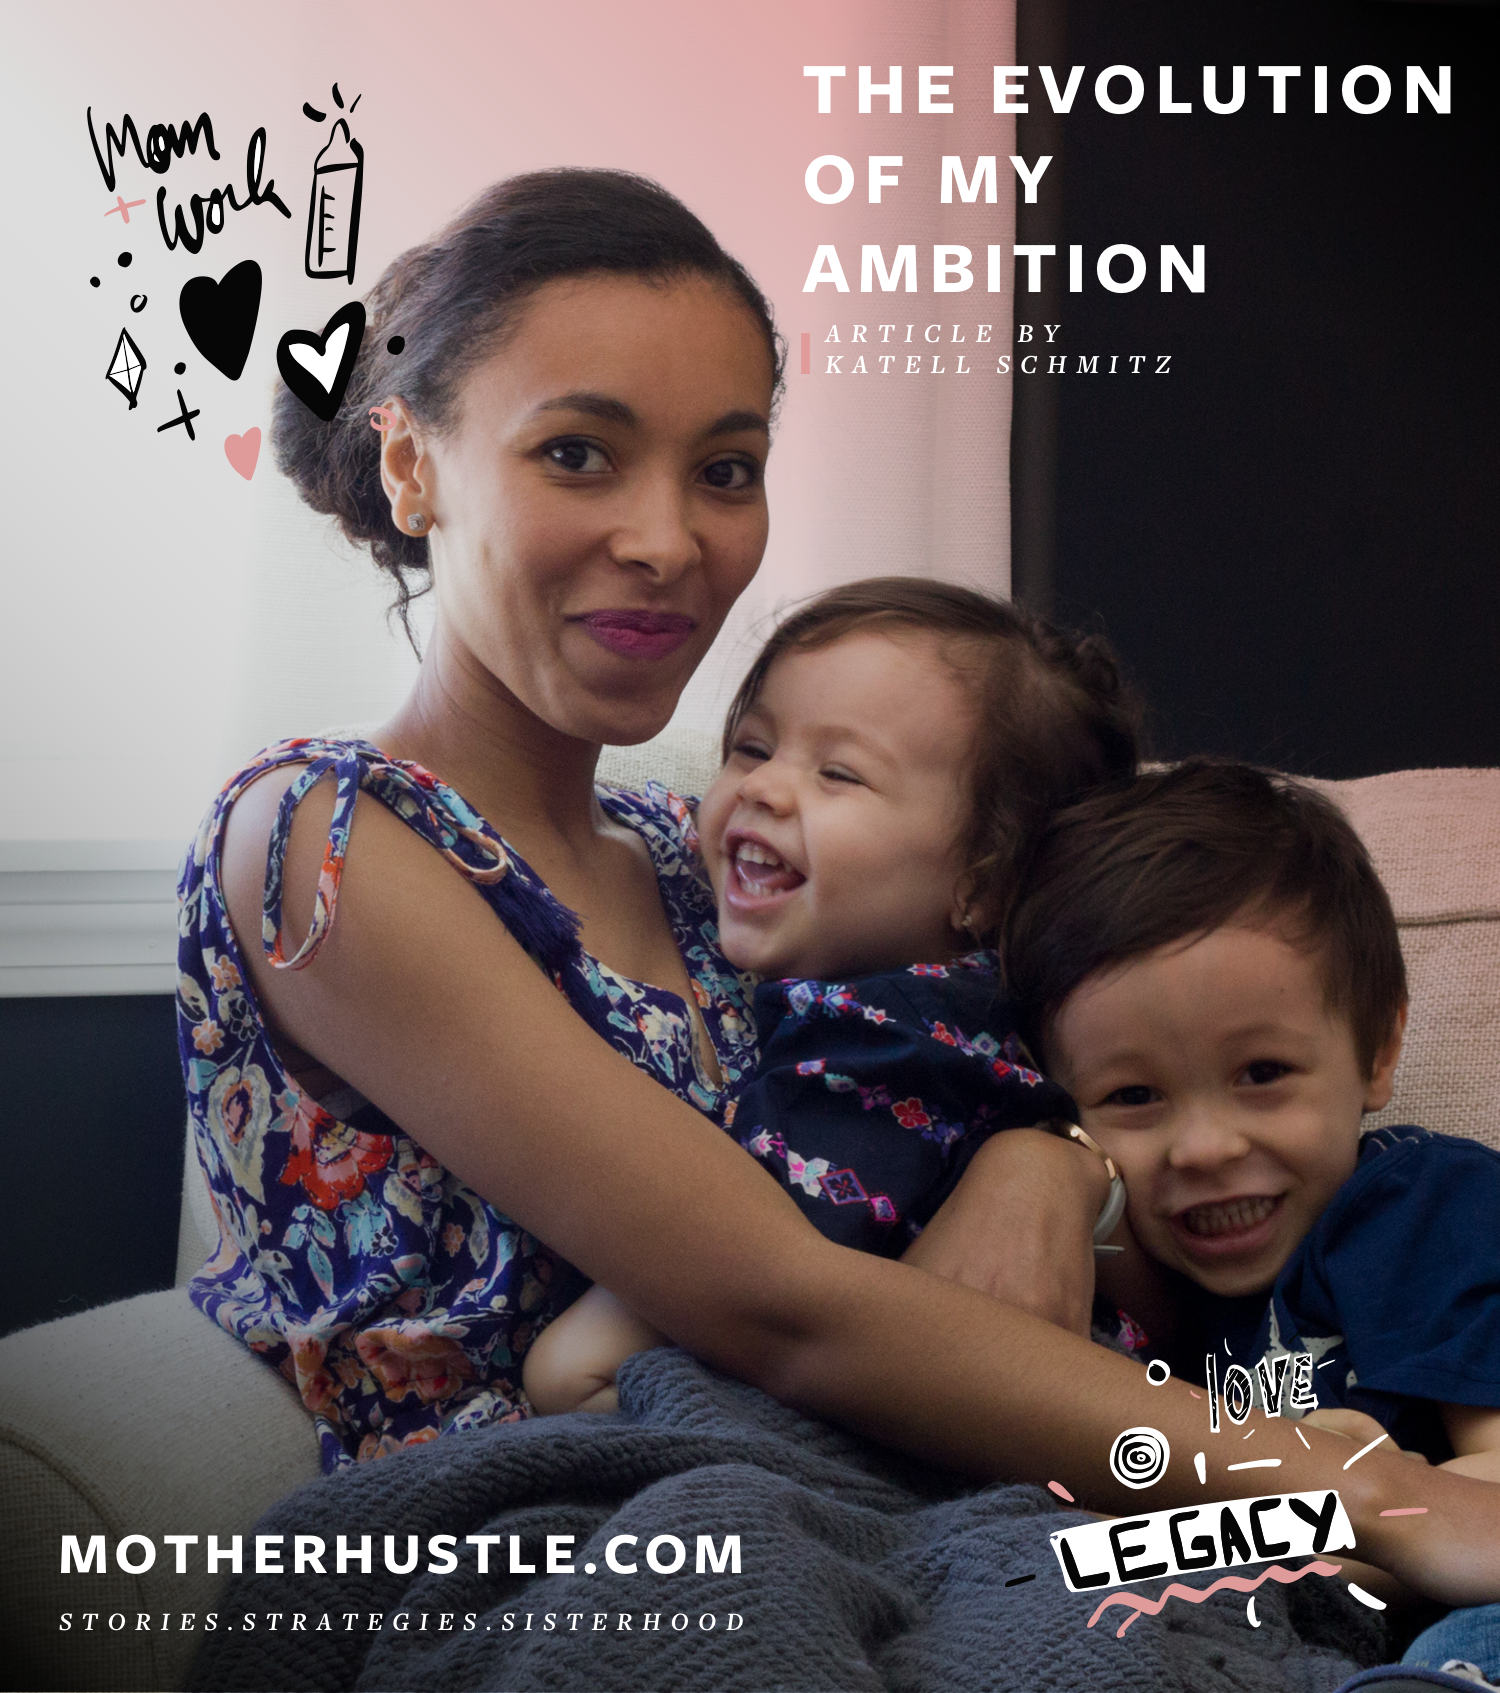 The Evolution of My Ambition - Katell Schmitz MotherHustle